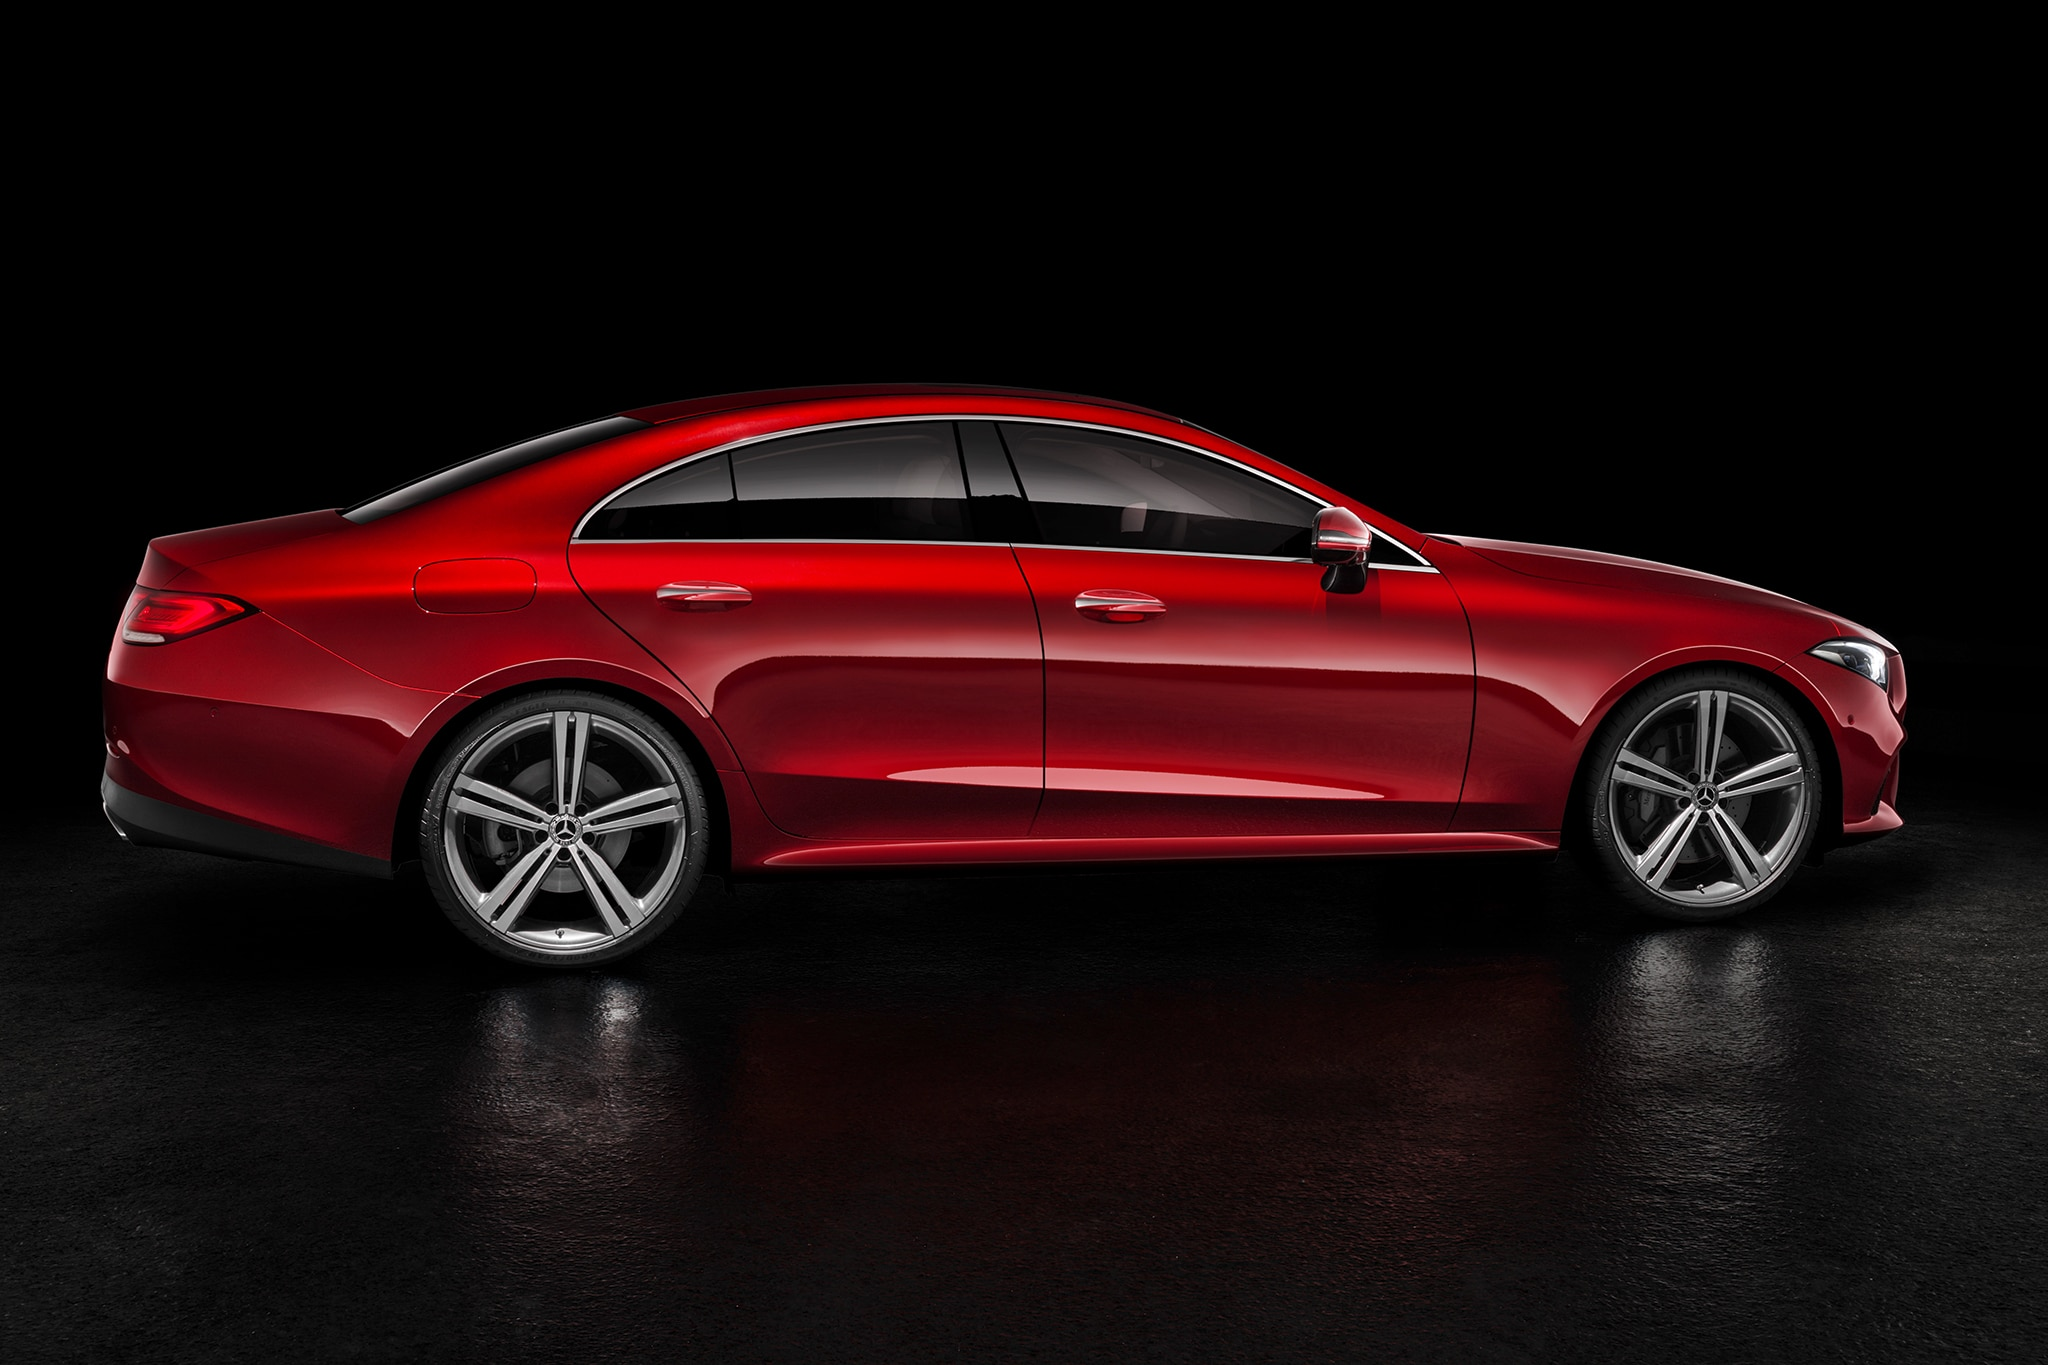 2019 Mercedesbenz Cls450 Brings Inlinesix Power To The